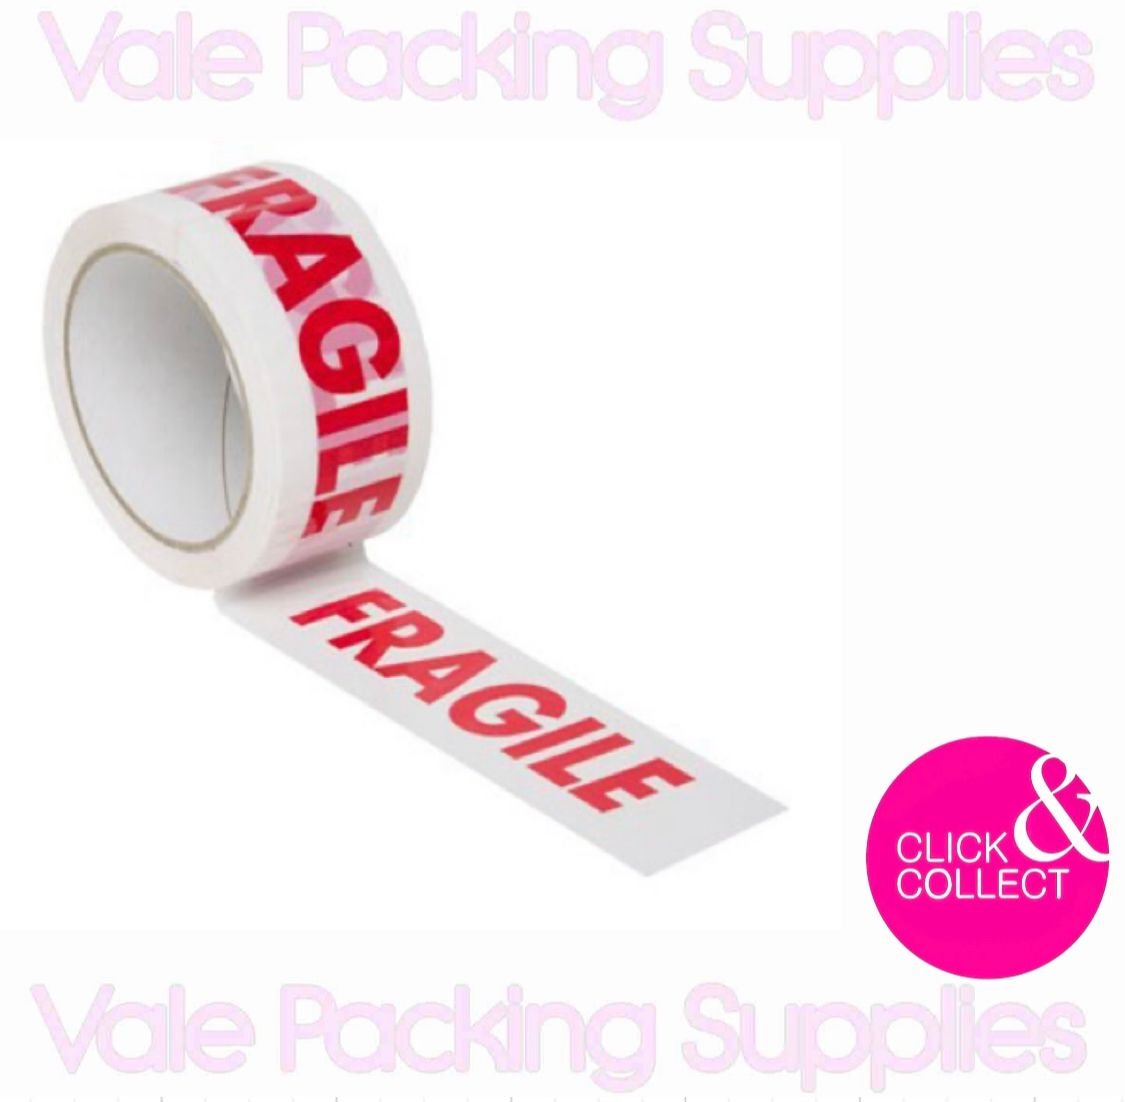 single roll of fragile marked tape with vale packing supplies logo on a white background with pink click and collect symbol